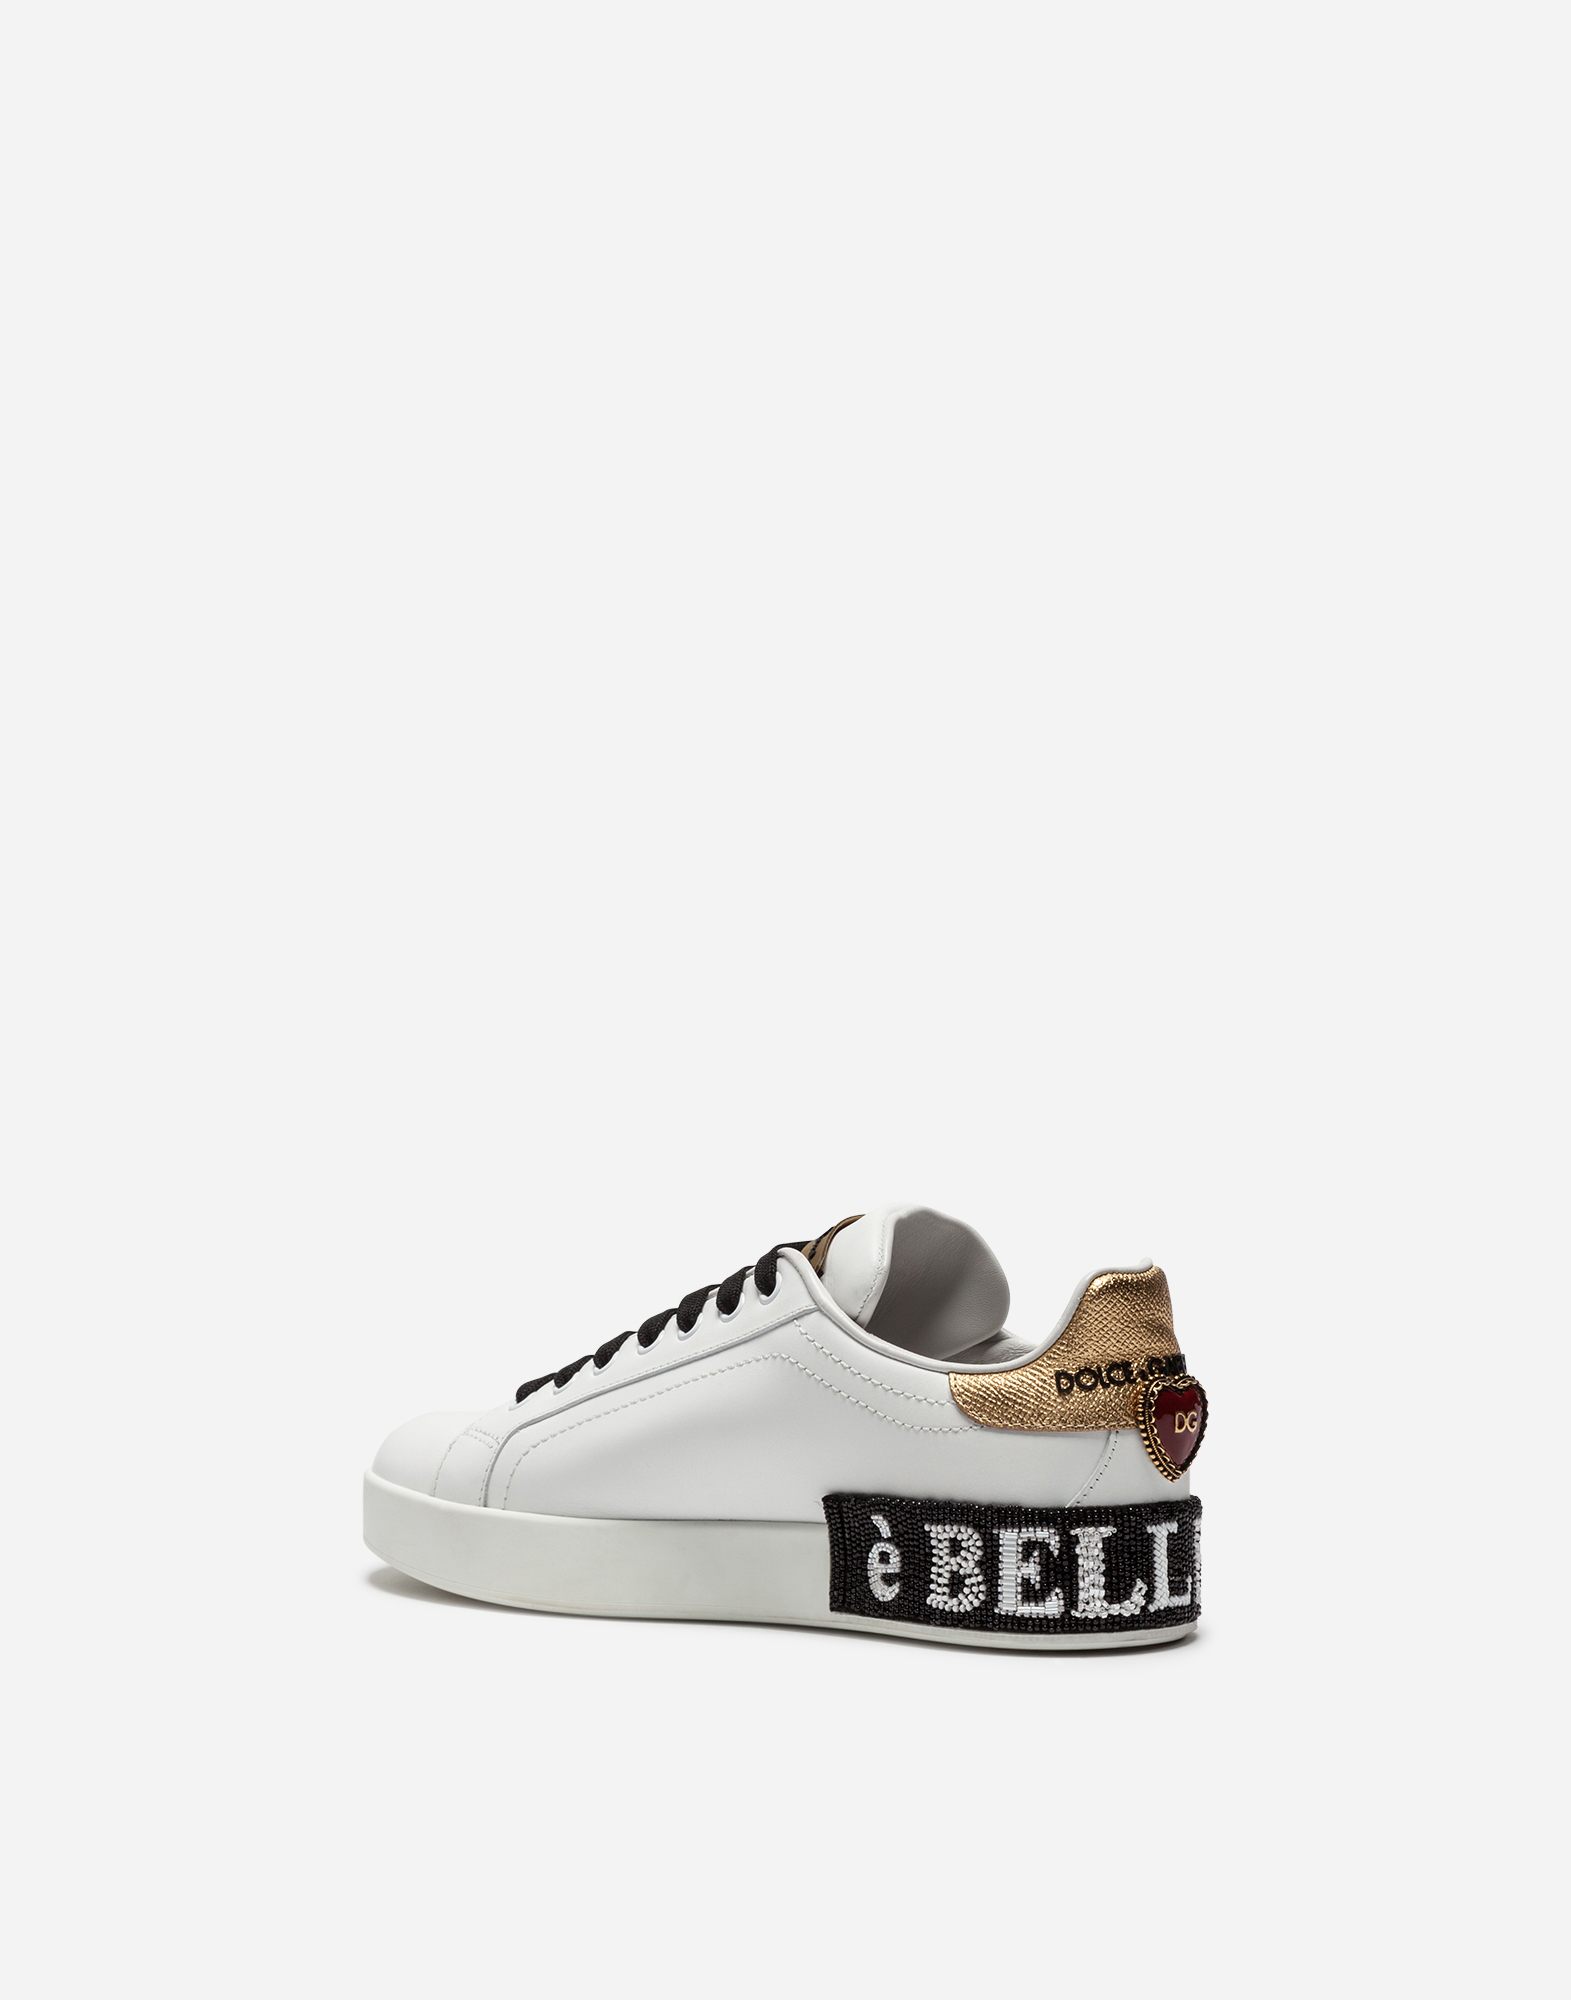 CALFSKIN SNEAKERS WITH EMBROIDERY AND APPLIQUÉS